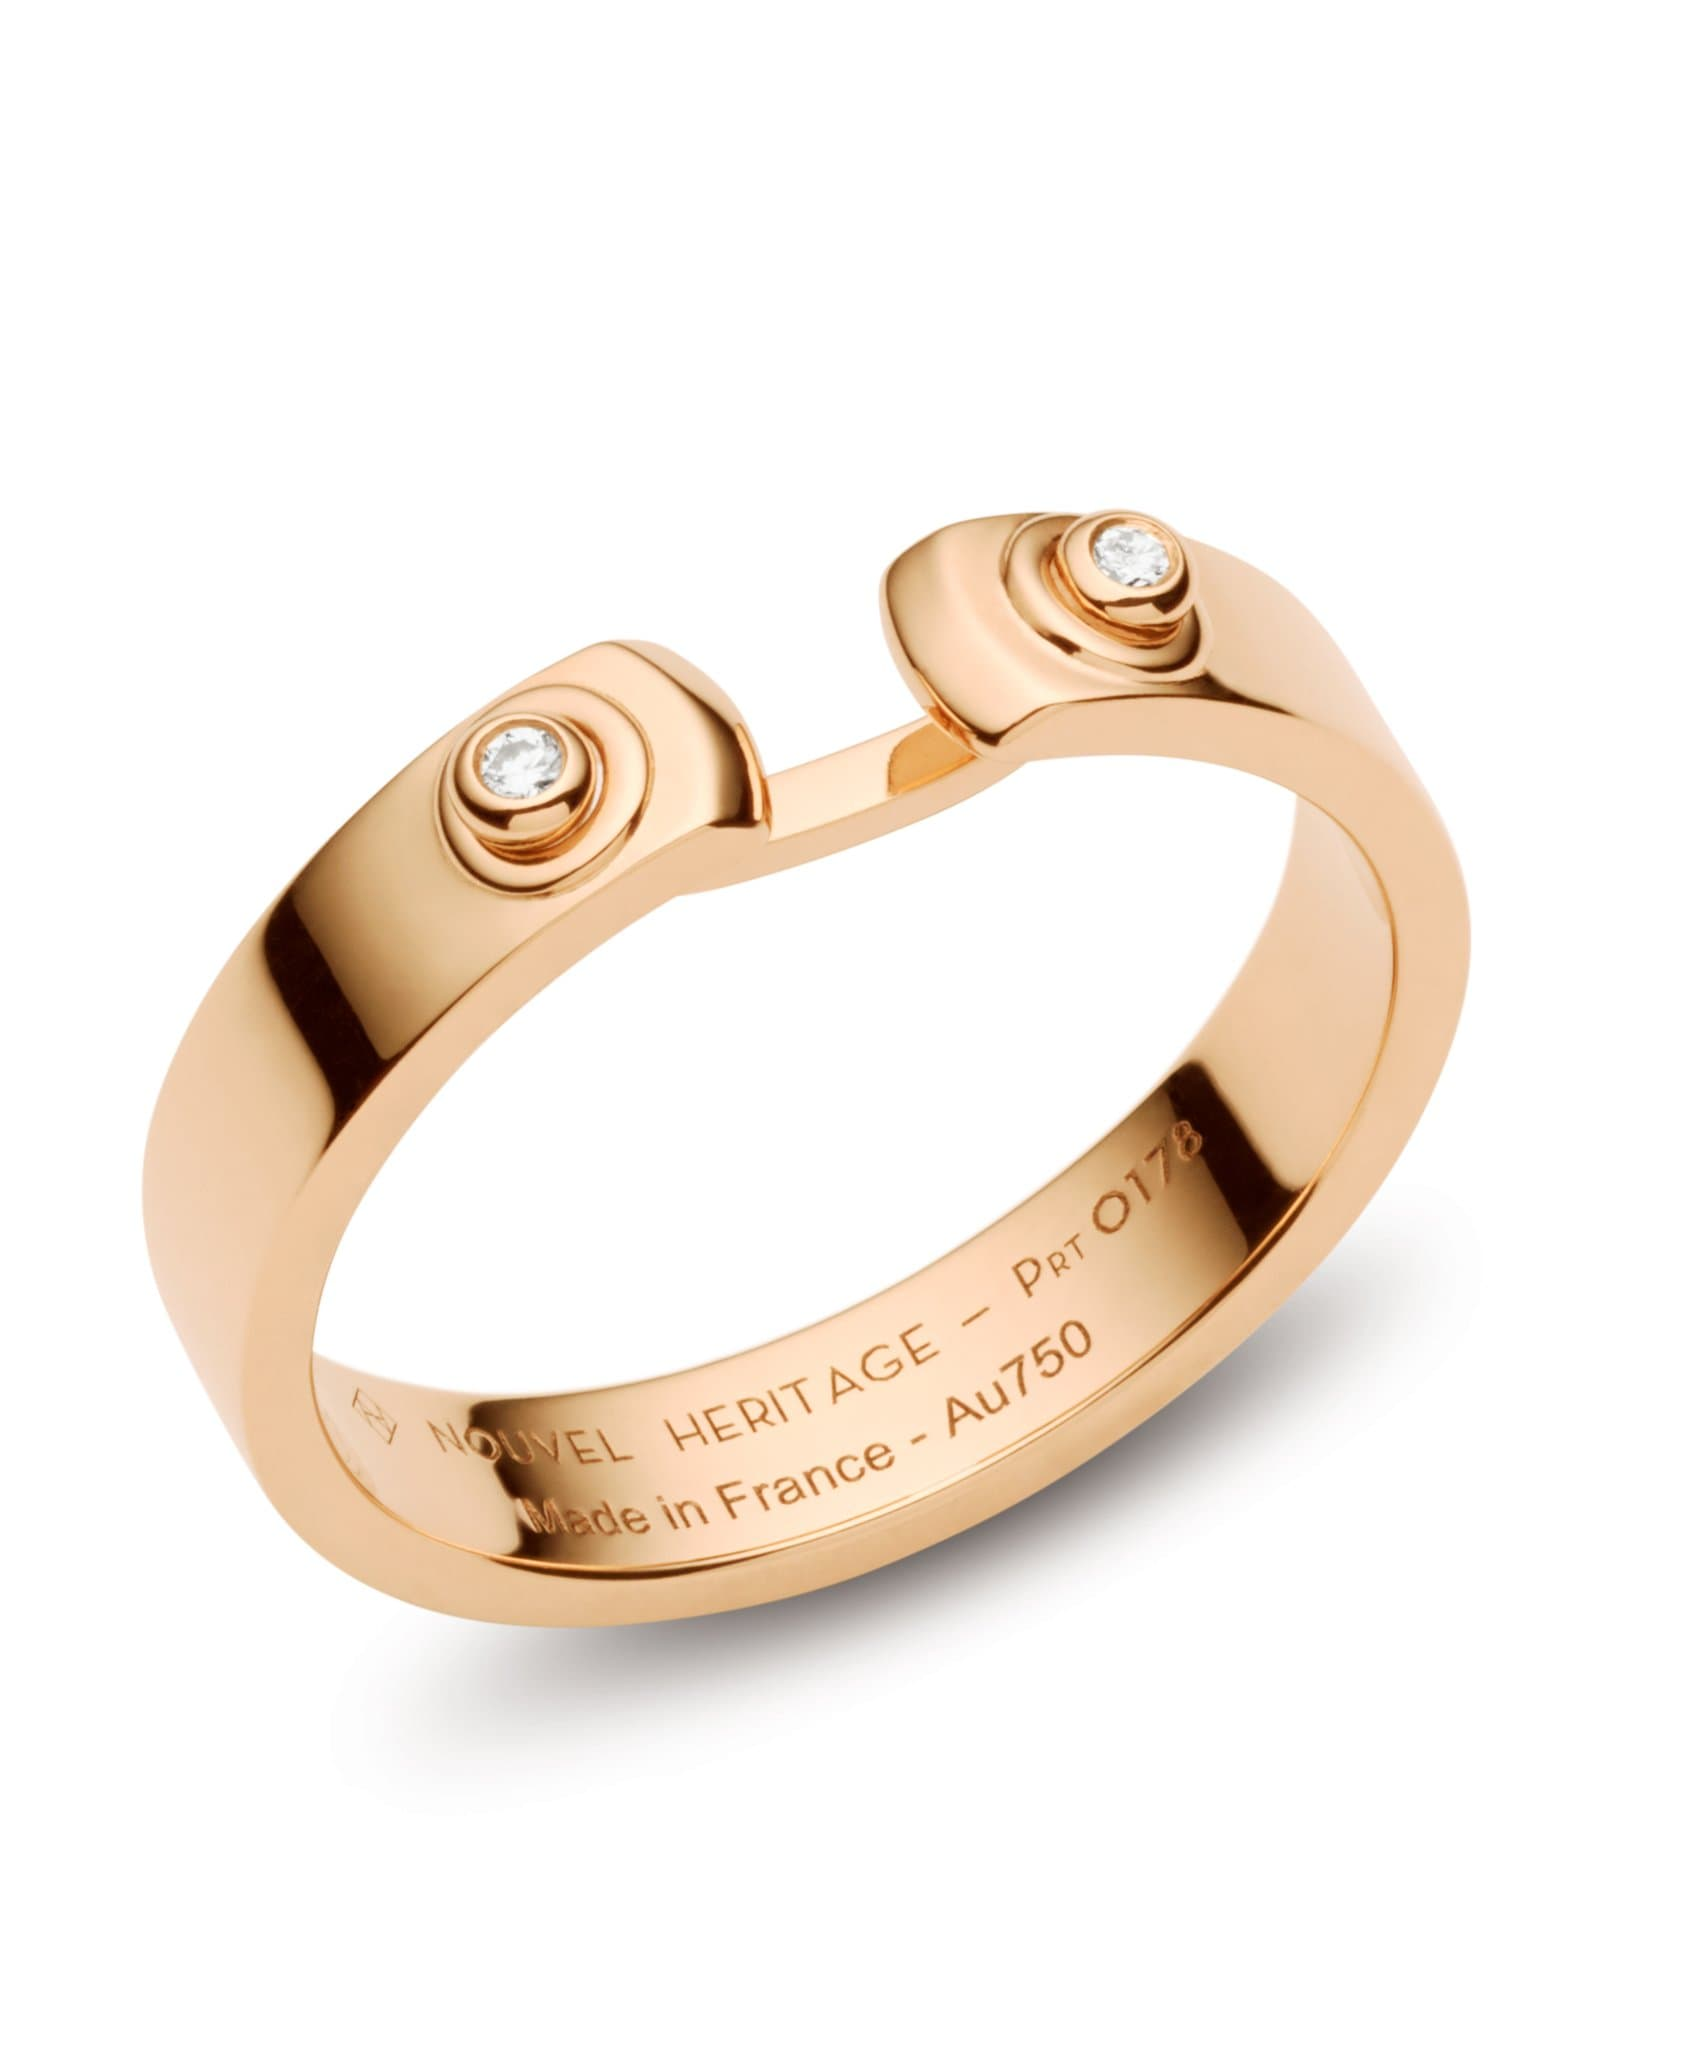 Monday Morning Mood Ring: Discover Luxury Fine Jewelry | Nouvel Heritage || Rose Gold